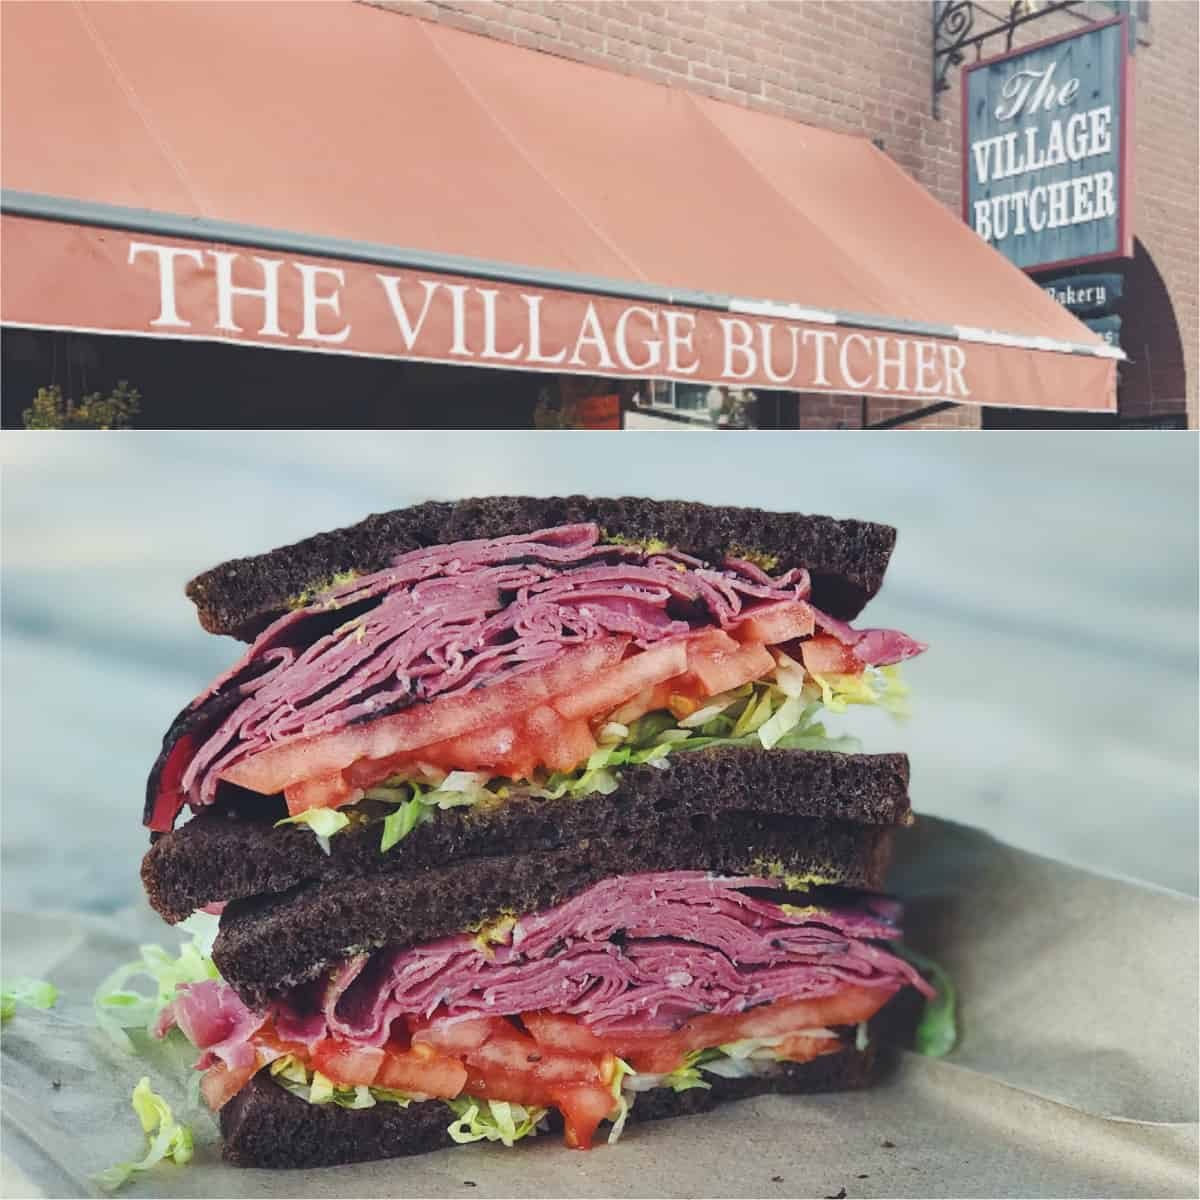 Pastrami Sandwich from The Village Butcher in Woodstock, VT